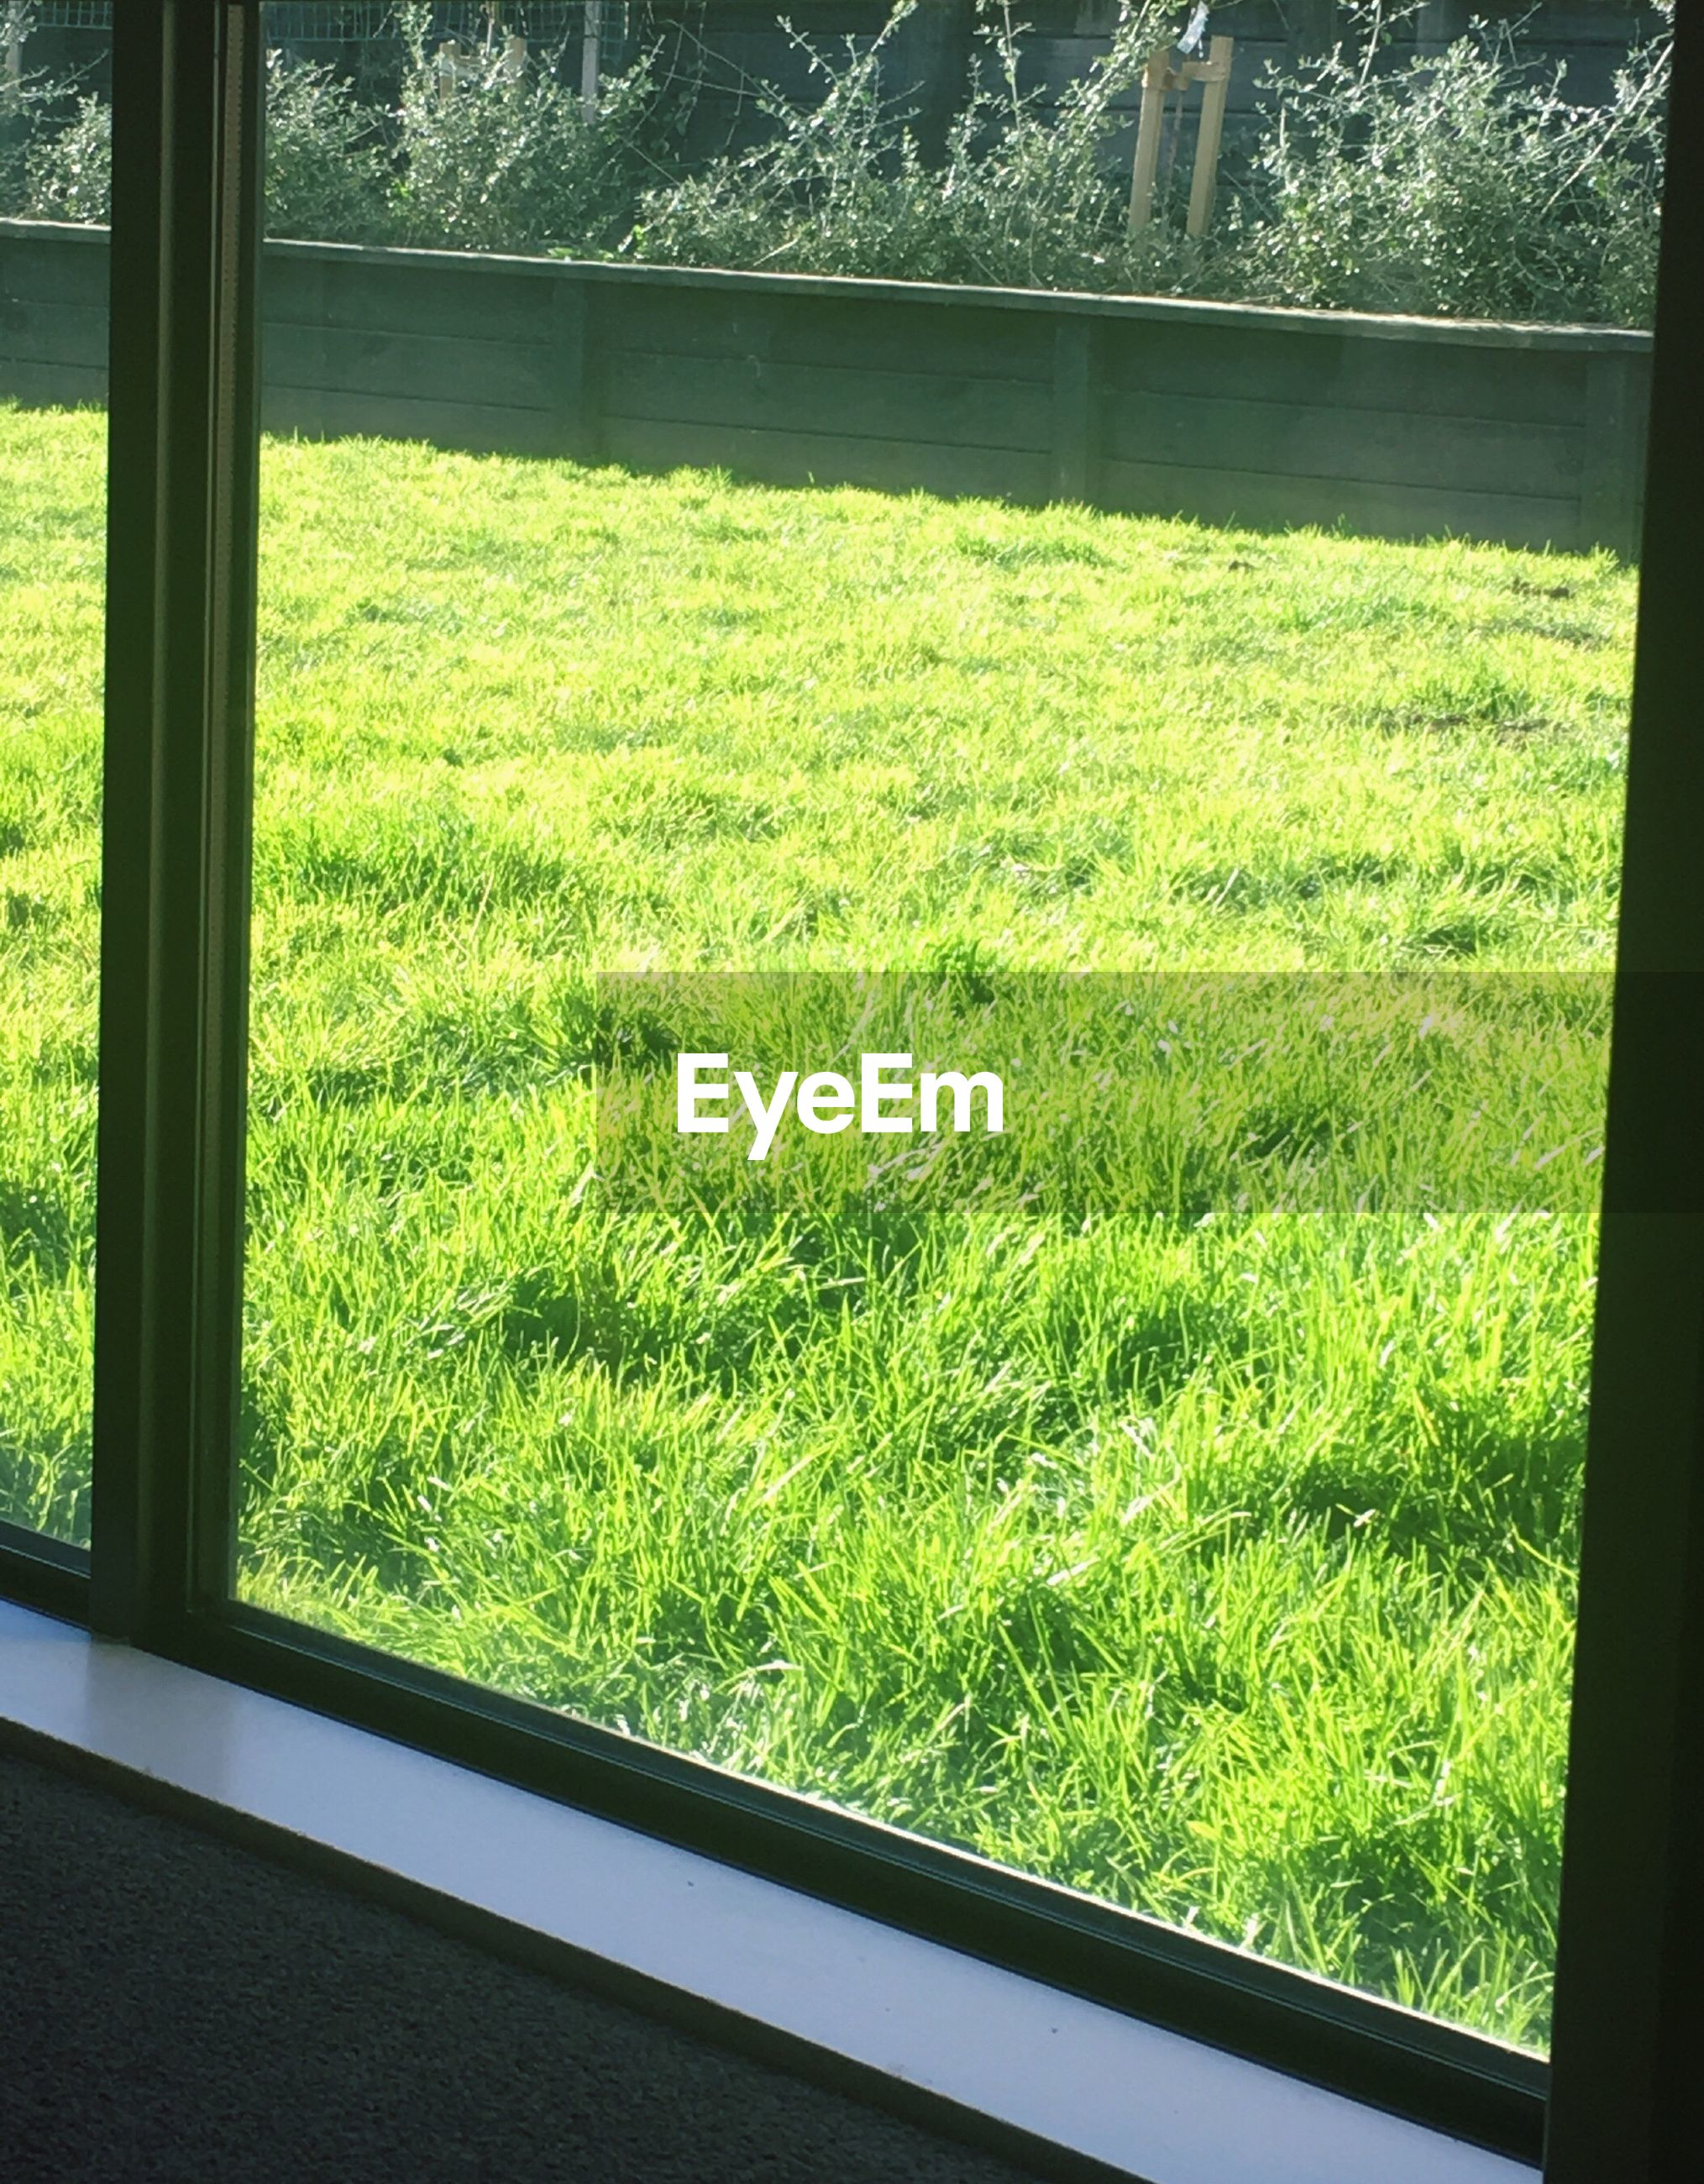 grass, green color, window, growth, tree, grassy, plant, close-up, day, water, lawn, nature, green, grassland, freshness, growing, grass area, lush foliage, uncultivated, tranquility, wildflower, garden, no people